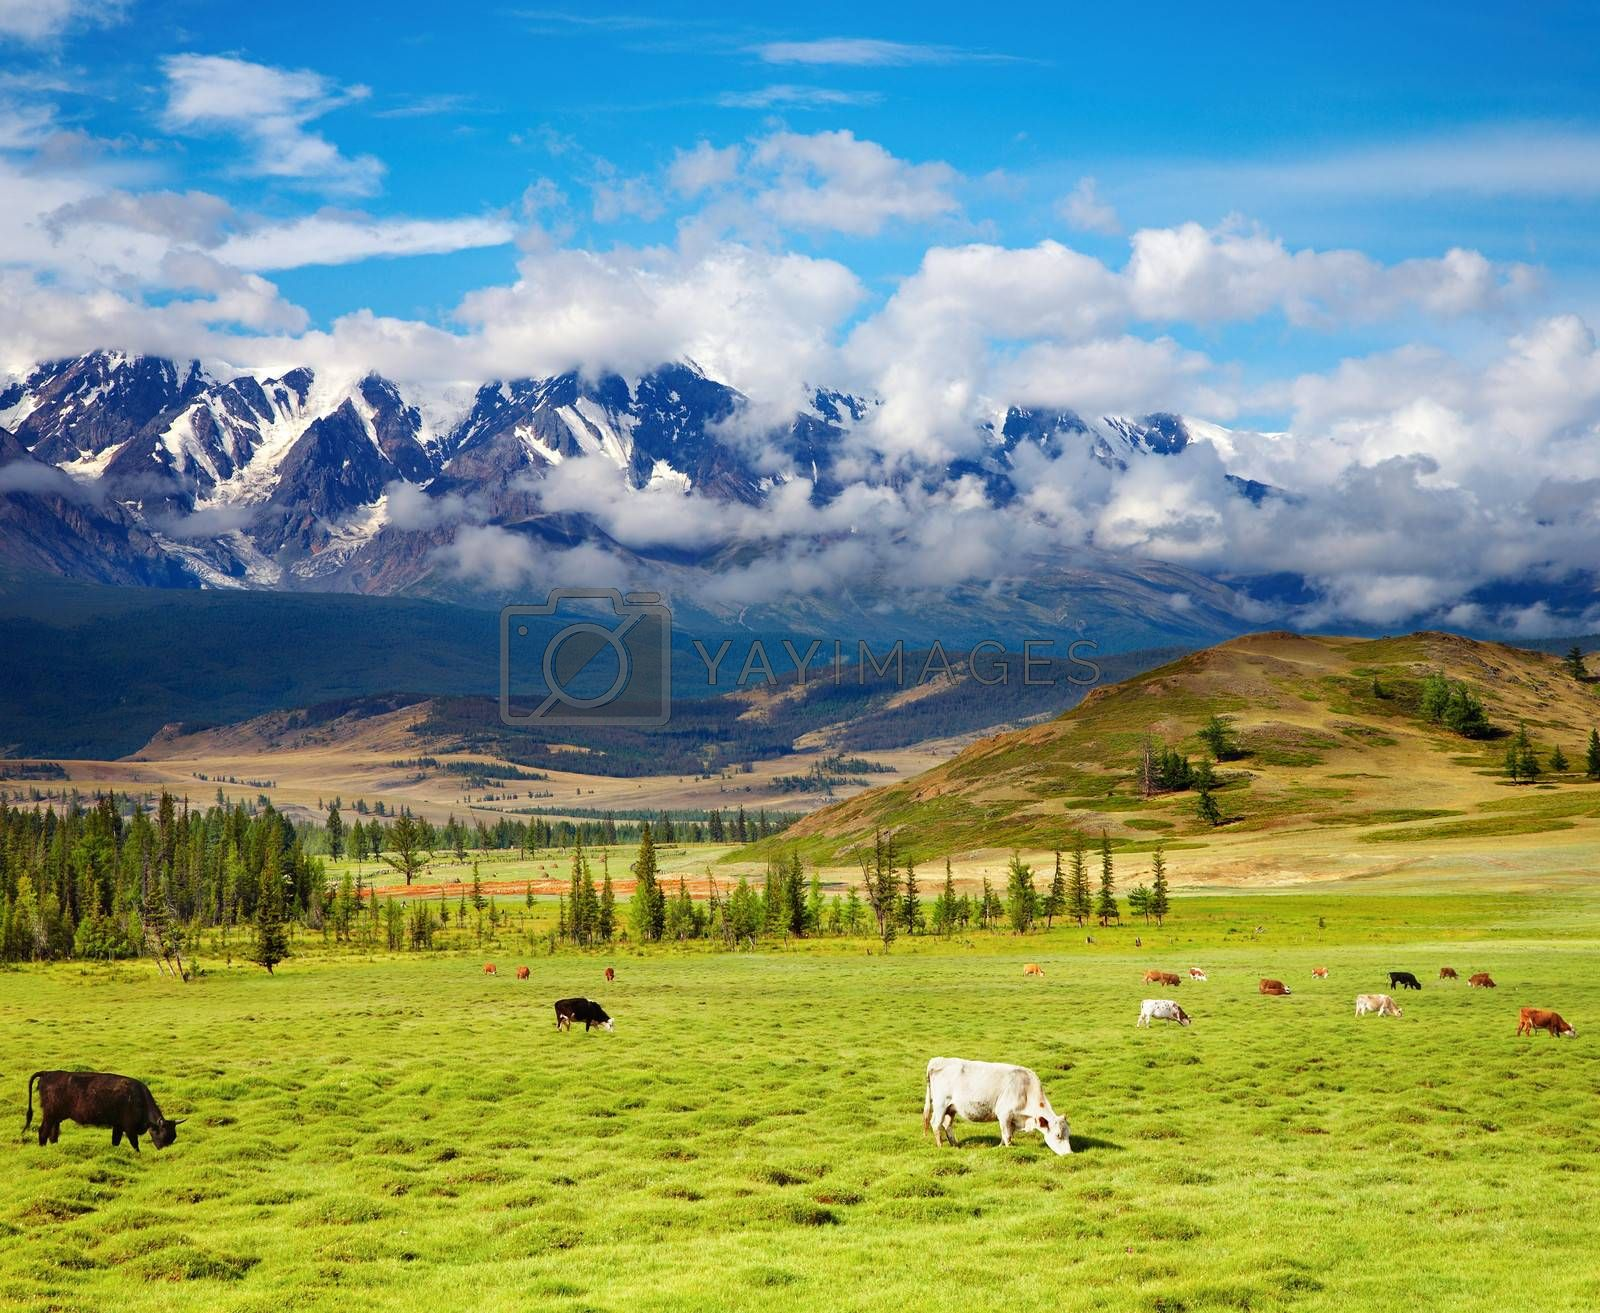 Landscape with snowy mountains and grazing cows